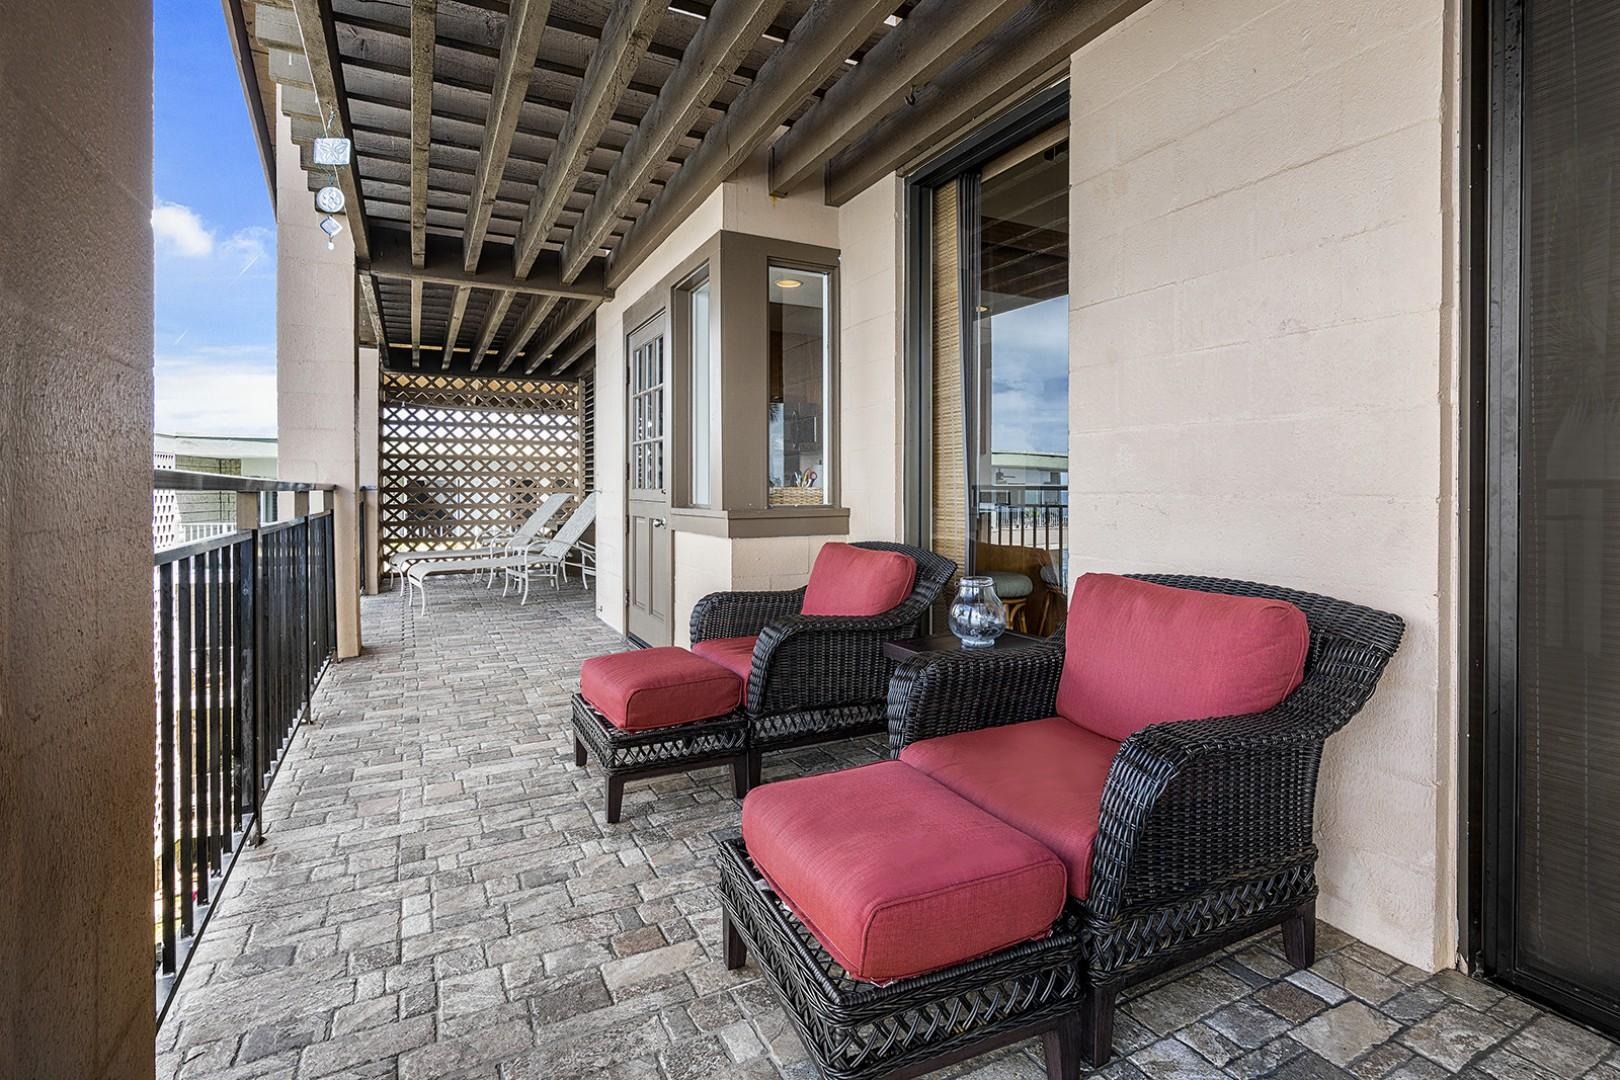 Relax in the overstuffed Lanai seating!